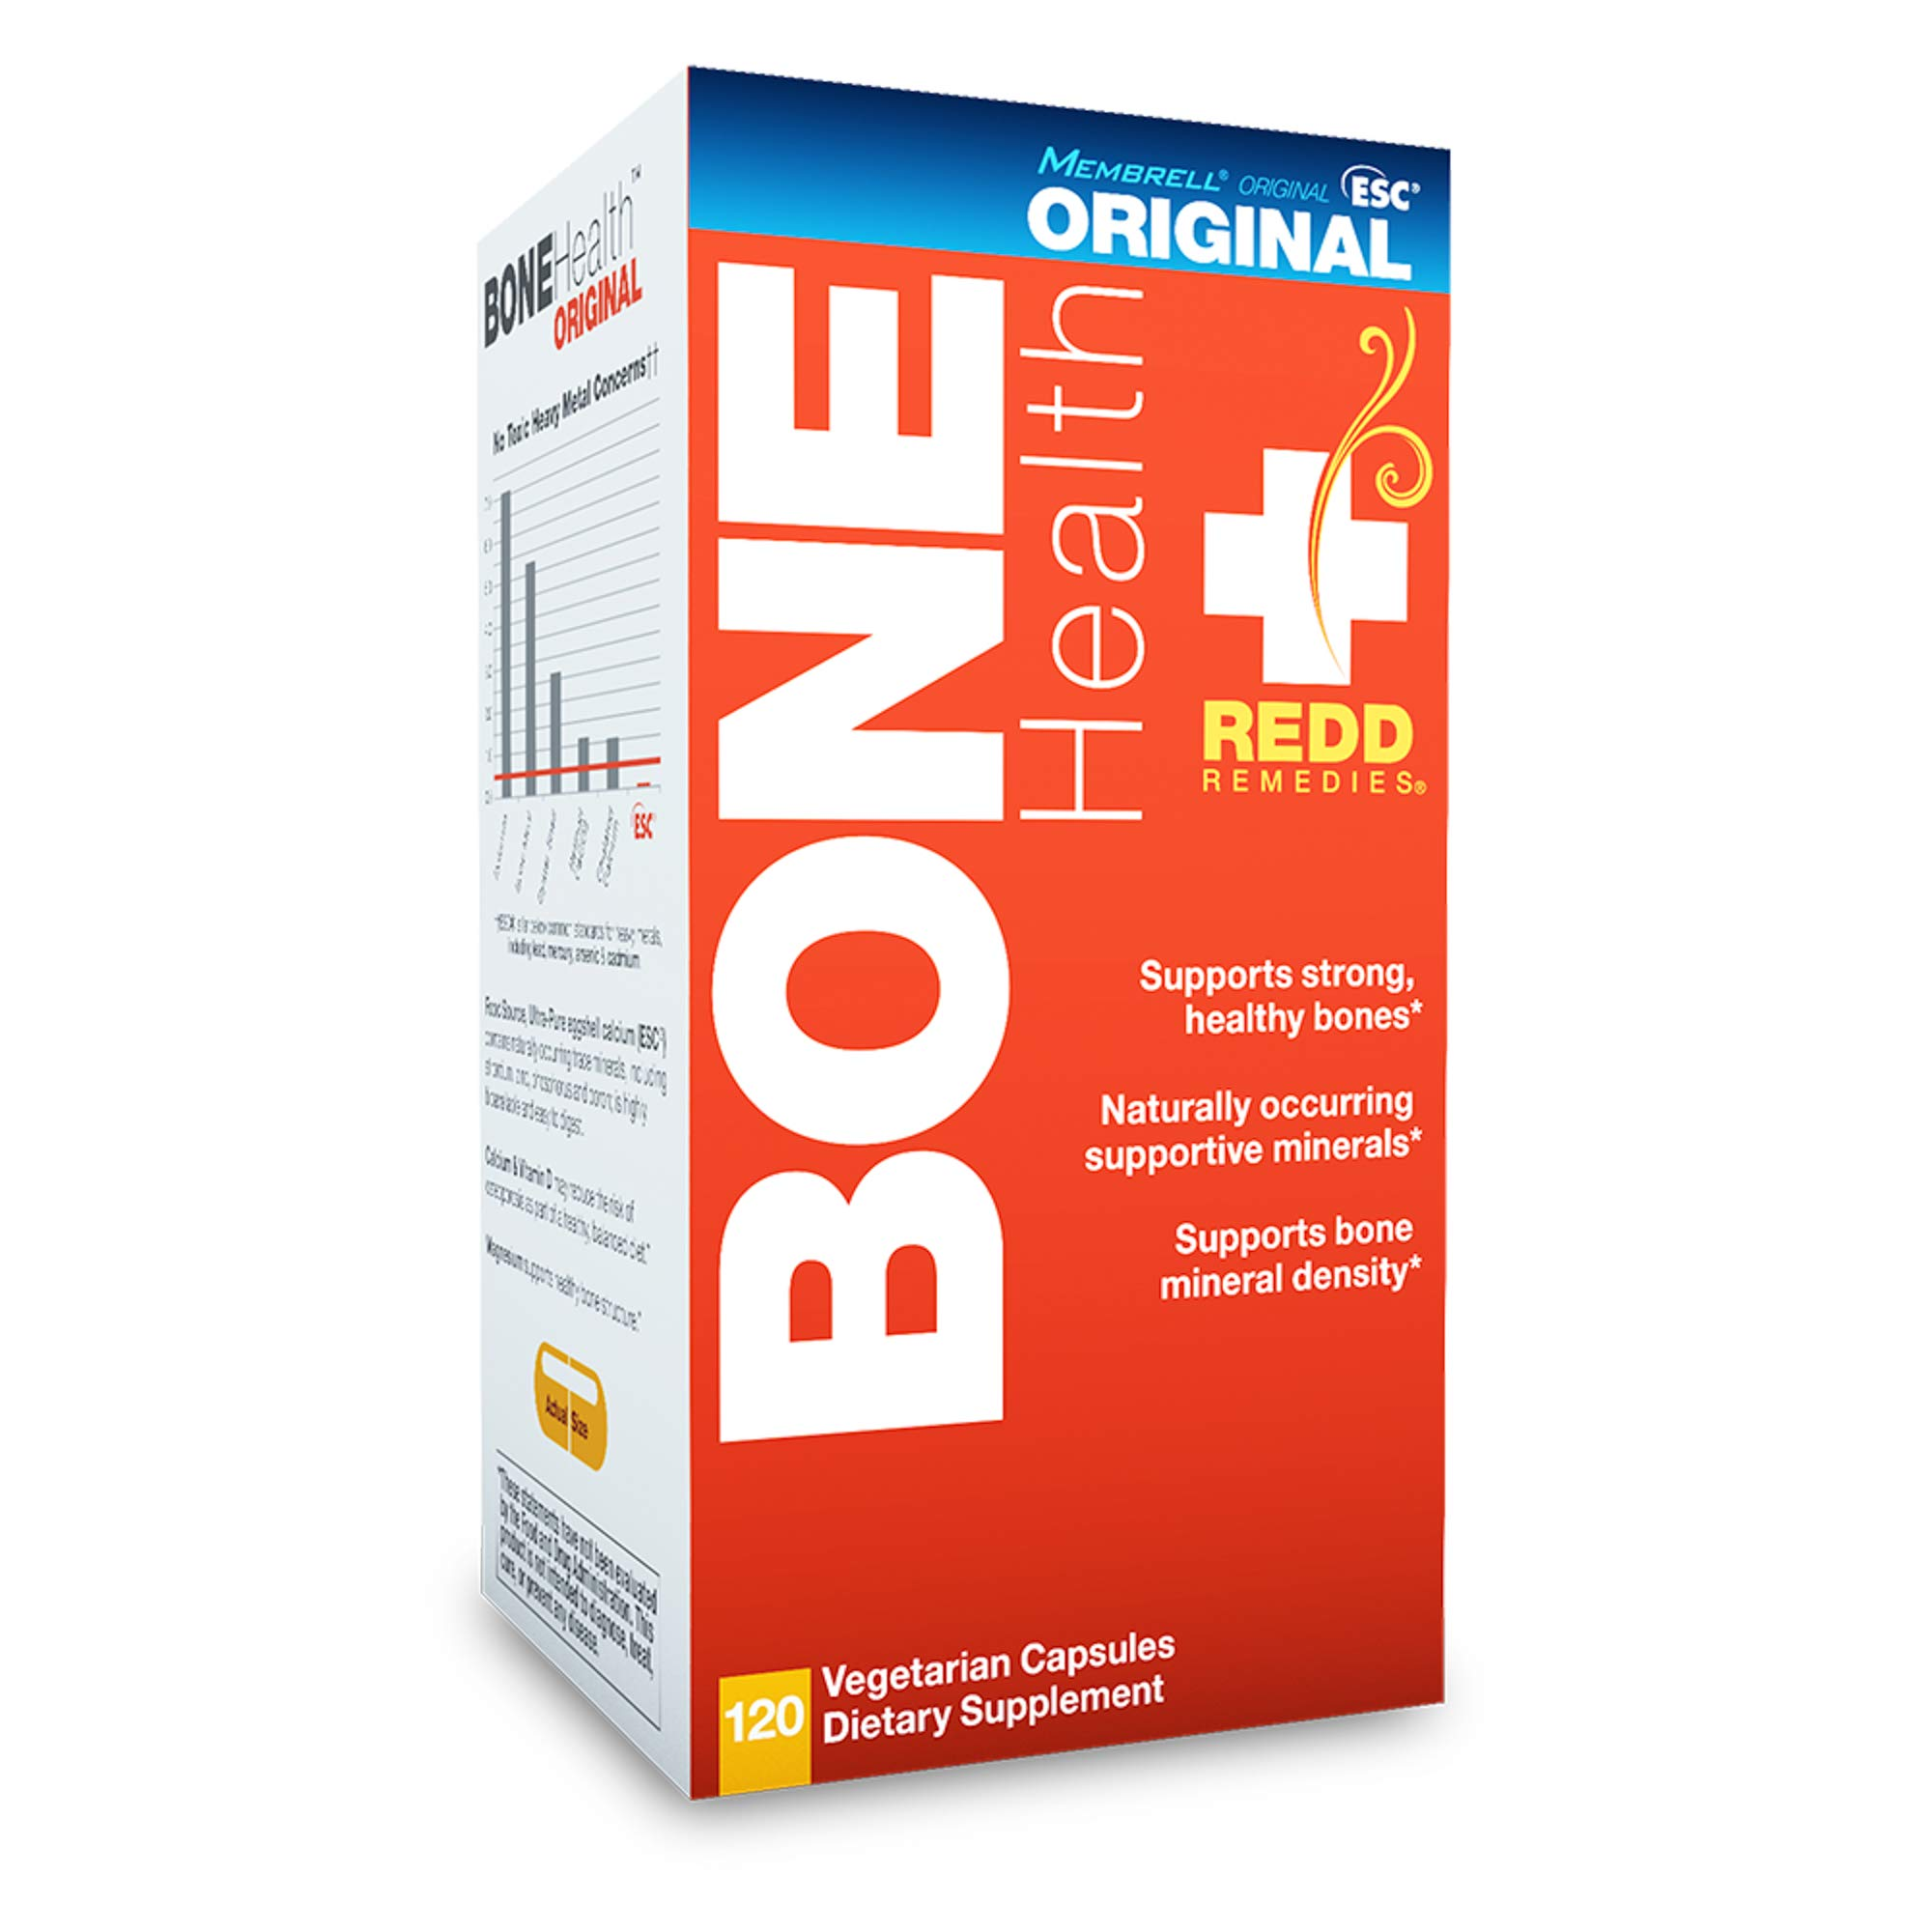 Redd Remedies - Bone Health Original, Vitamin D3 and Calcium for Strong Bone Support, 120 count by Redd Remedies